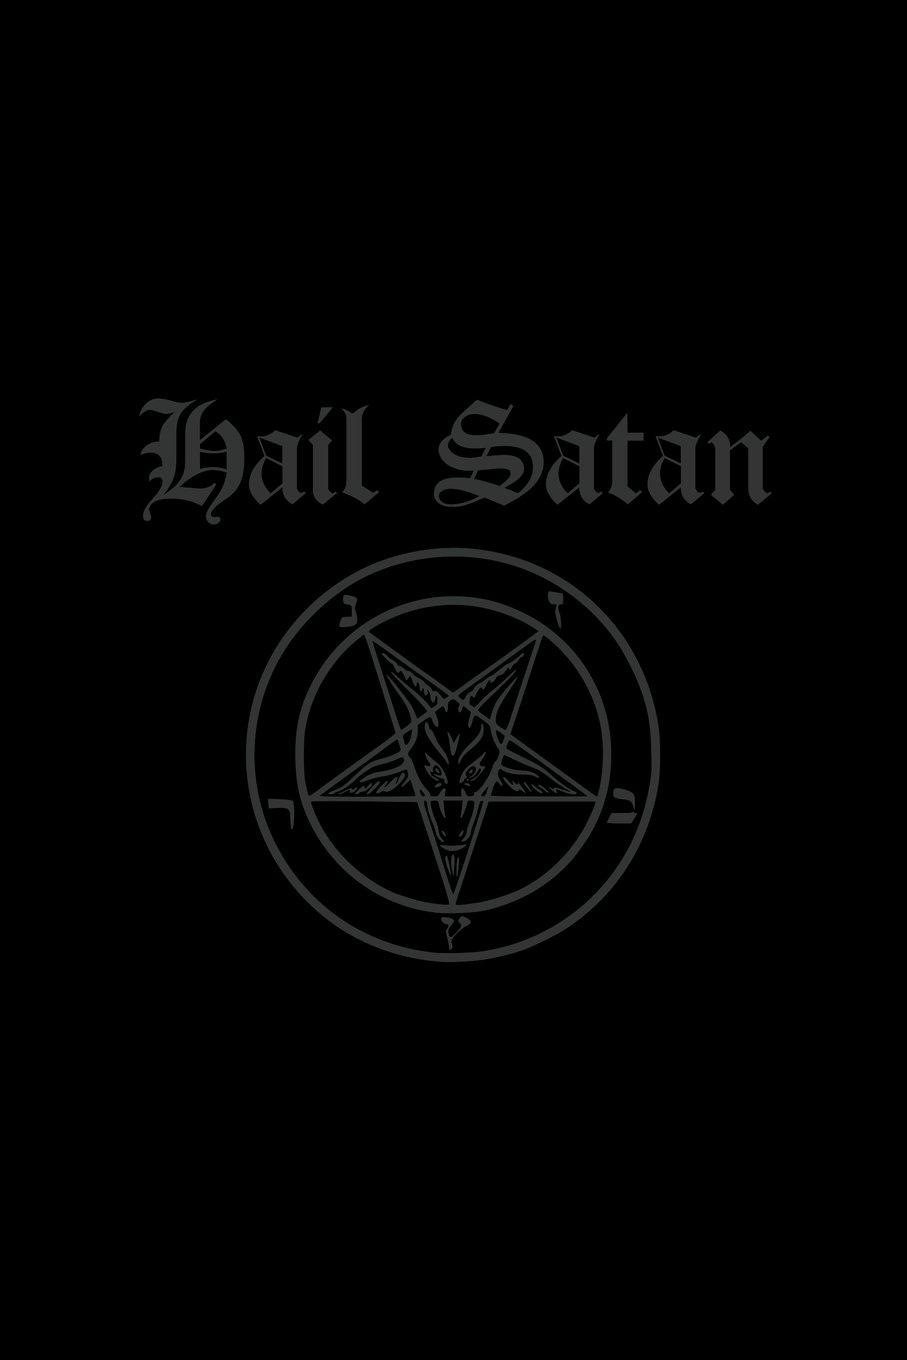 Hail Satan: Satanic Pentagram - Journal and Notebook (666 Satan, Lucifer, Black Magick, Occult, Wicca, Thelema Magical Journals) PDF